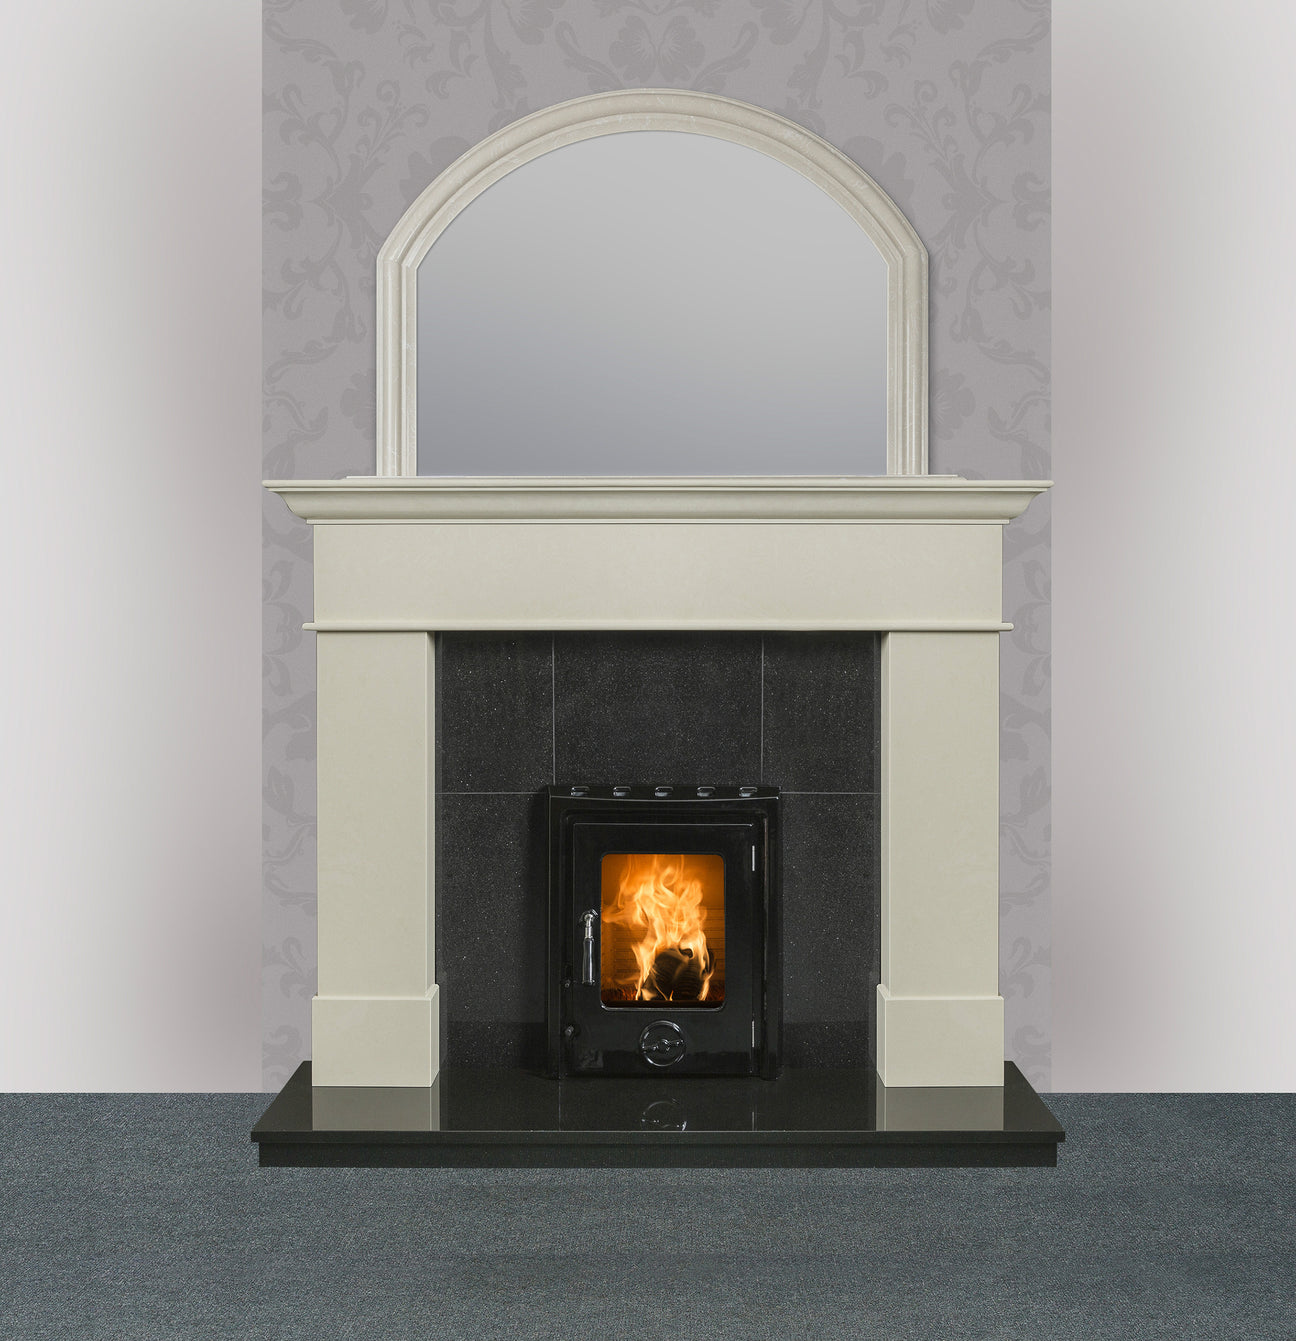 Image of Geraldton marble fireplace in ivory pearl finish with Kate insert stove enamel